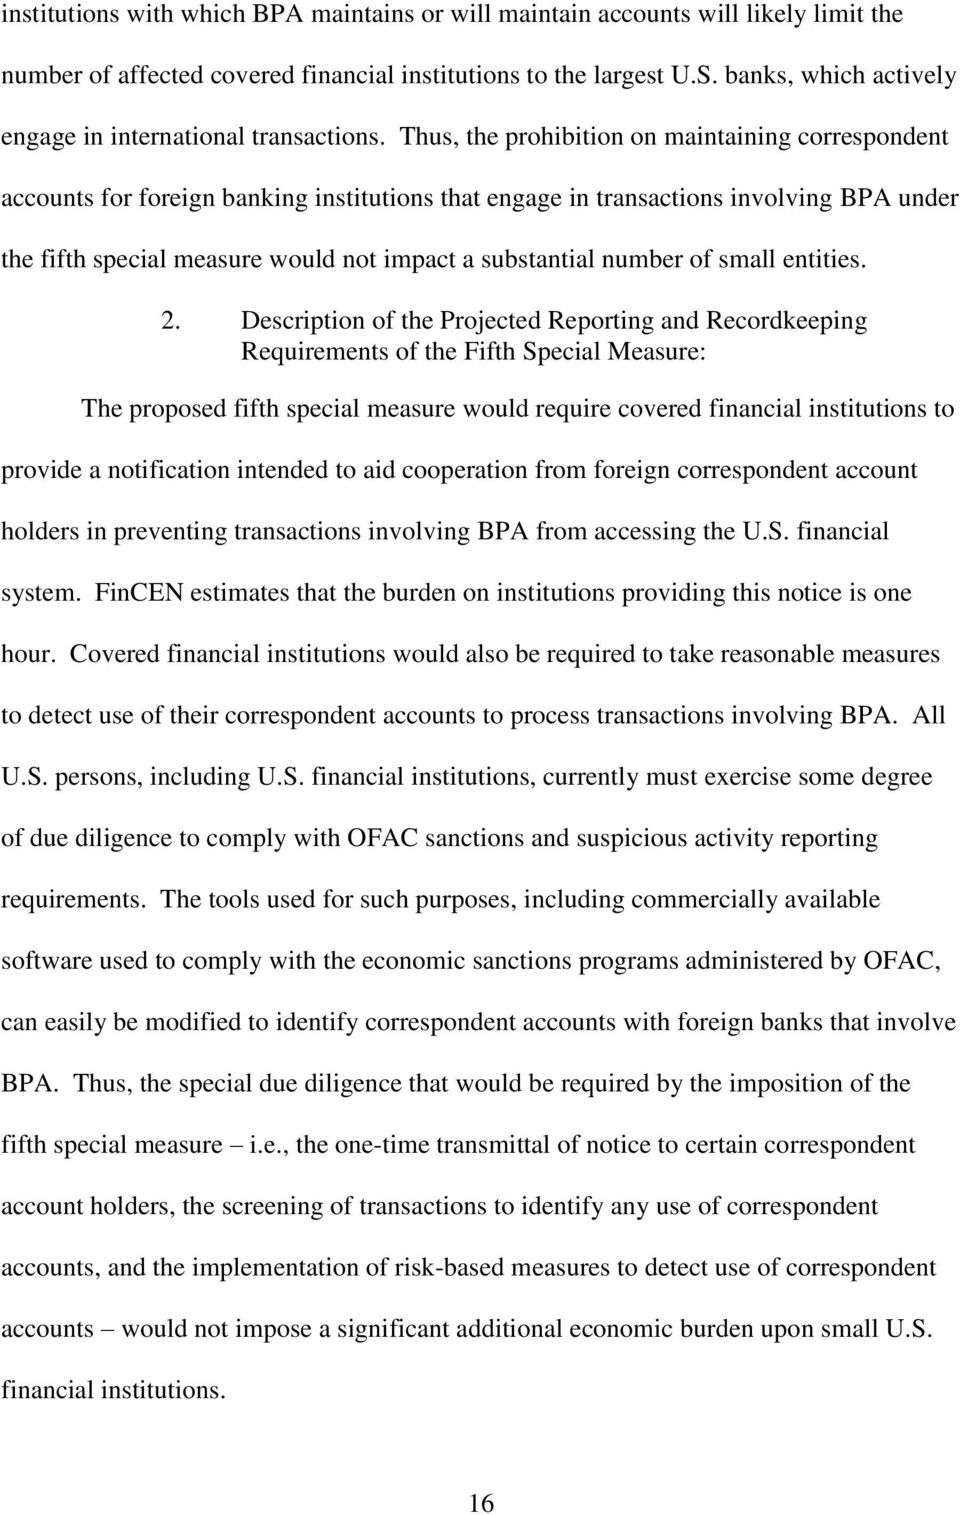 Thus, the prohibition on maintaining correspondent accounts for foreign banking institutions that engage in transactions involving BPA under the fifth special measure would not impact a substantial